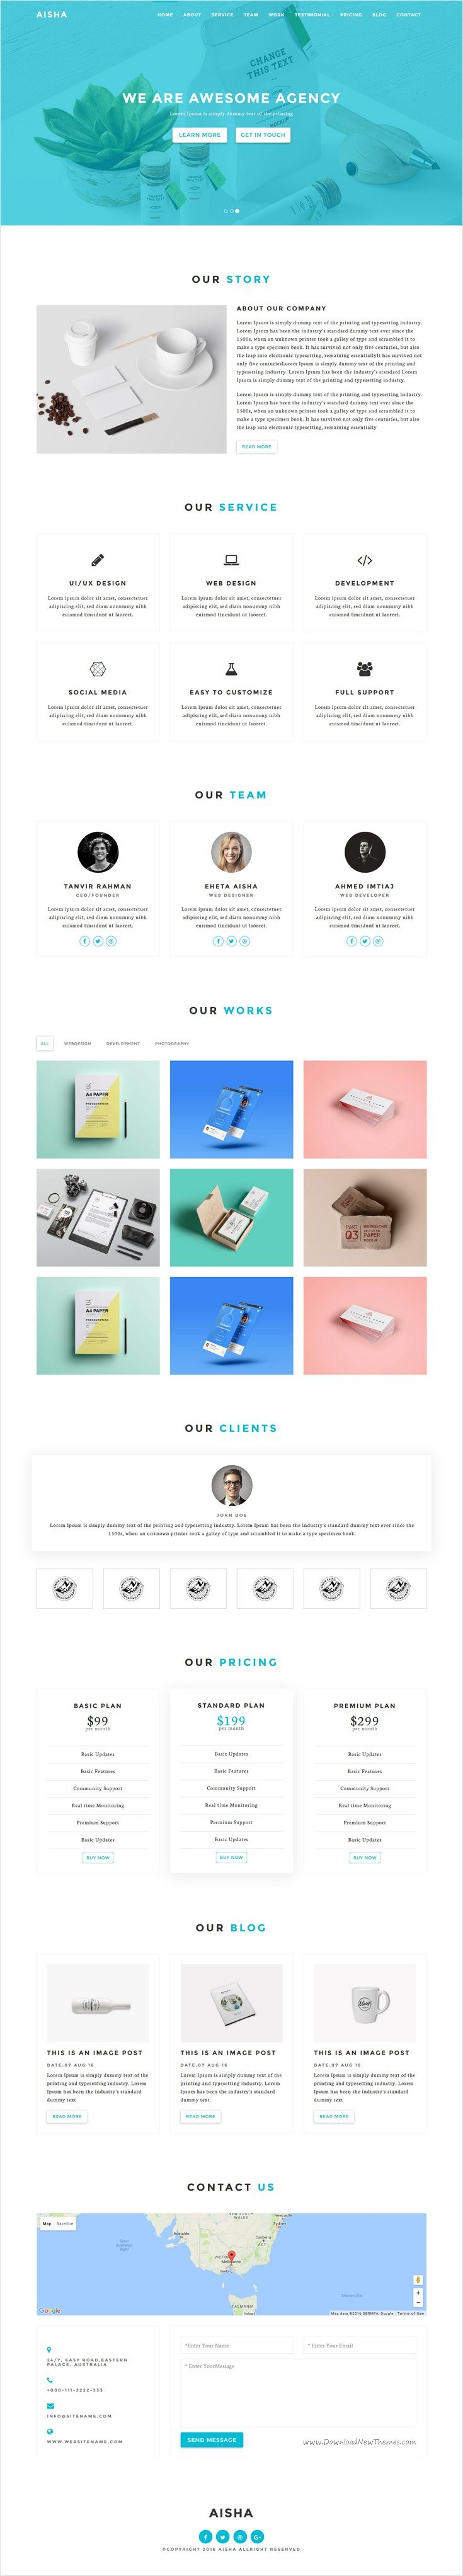 Aisha is fresh and clean material design #Bootstrap HTML5 #template for responsive #agency, corporate and business website with 3 unique homepage layouts download now➩ https://themeforest.net/item/aisha-material-design-html5-agency-template/17415072?ref=Datasata